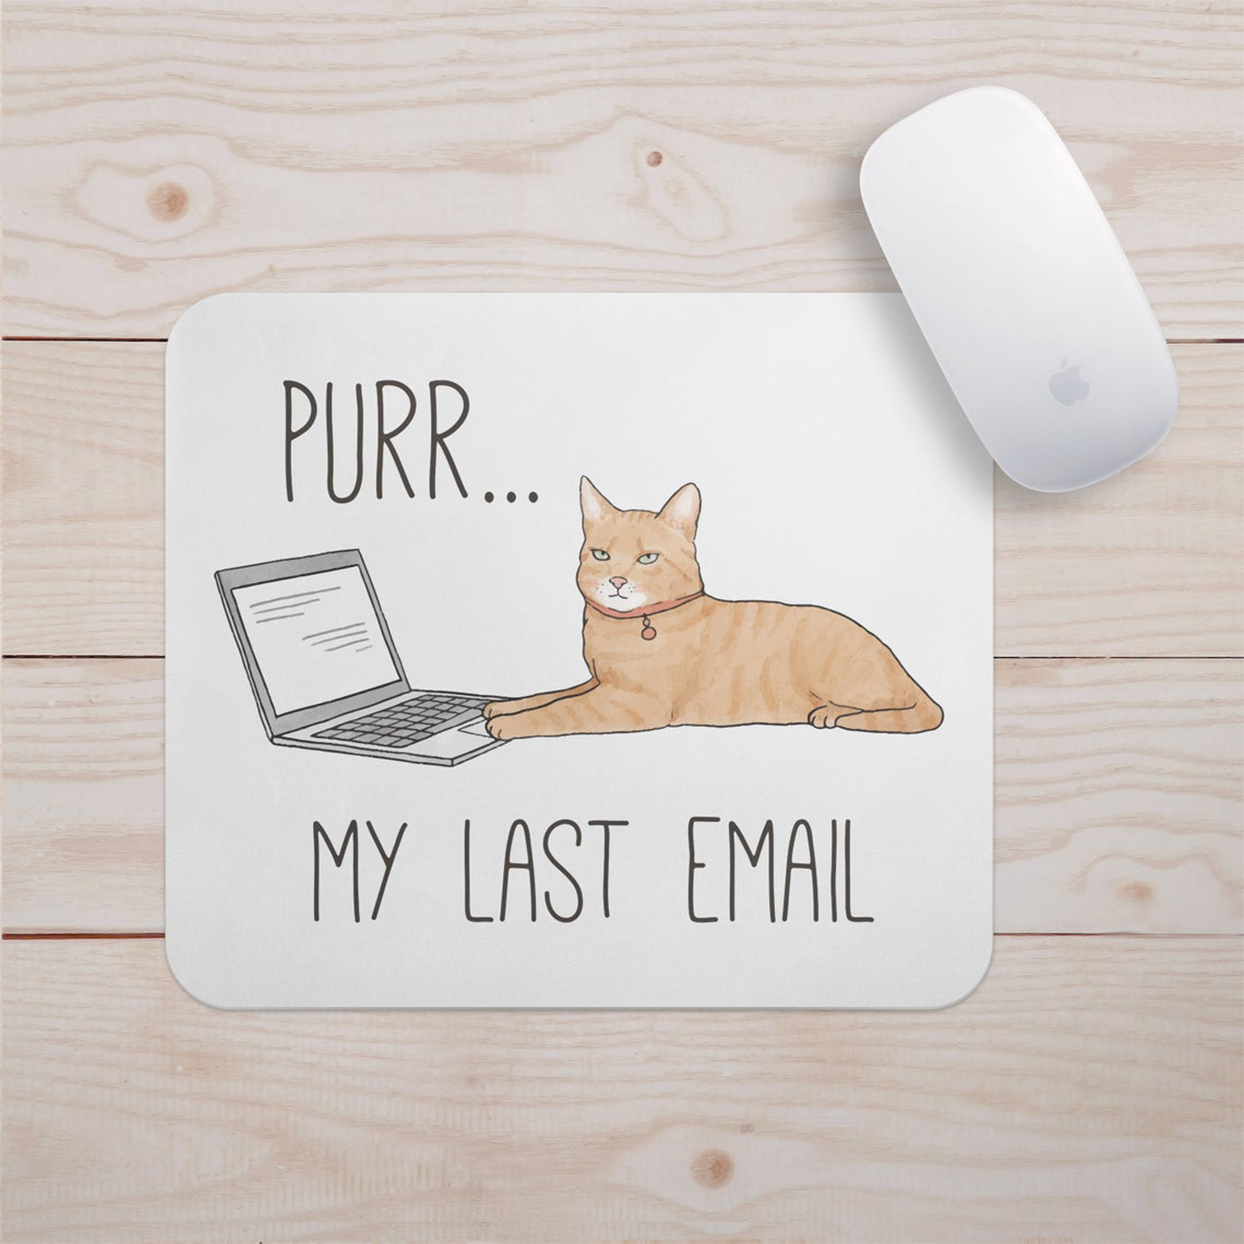 purr my last email mouse pad